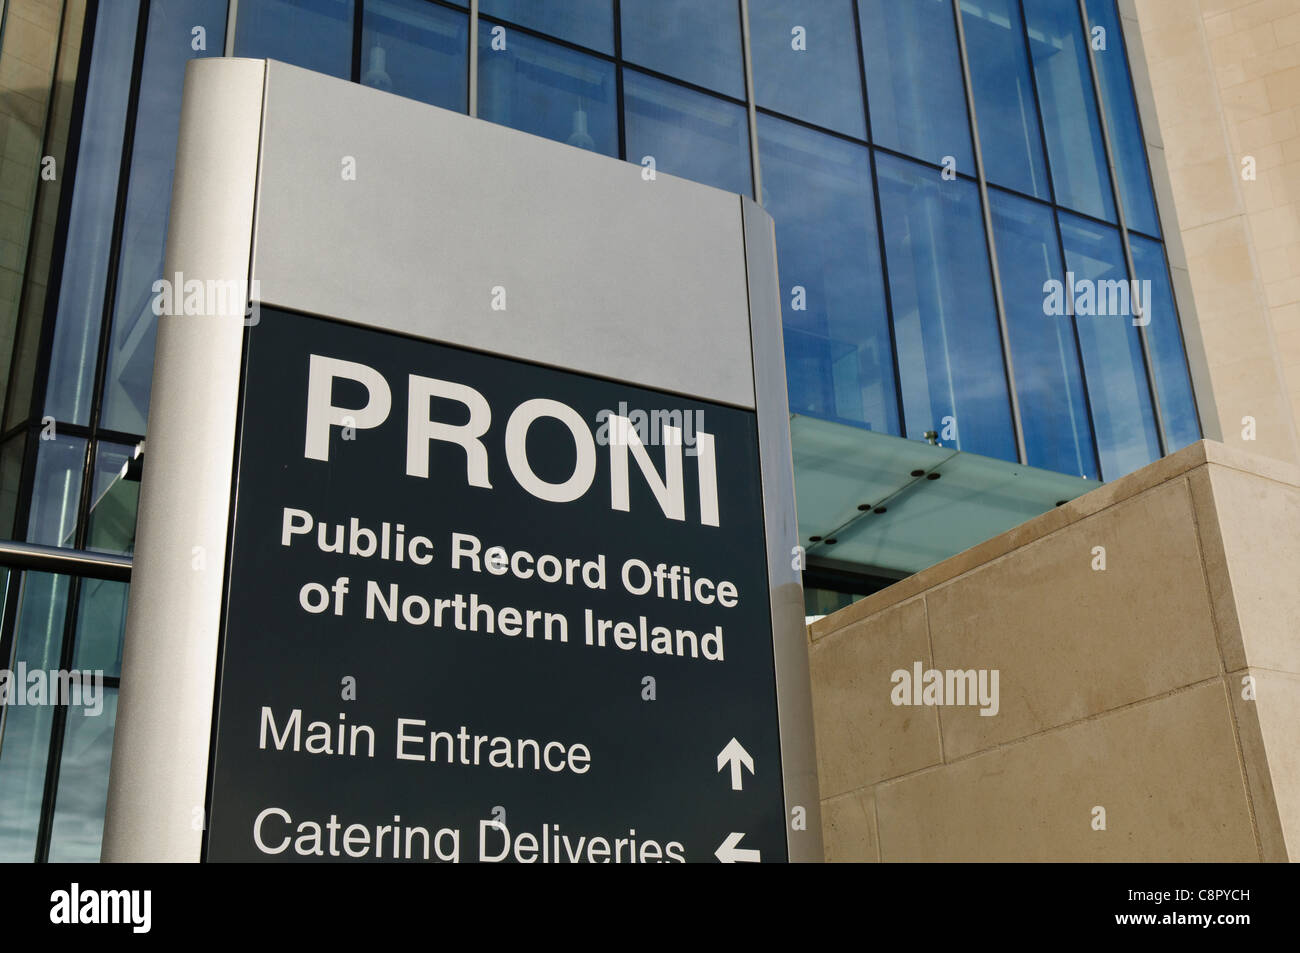 Public Records Office for Northern Ireland (PRONI) - Stock Image